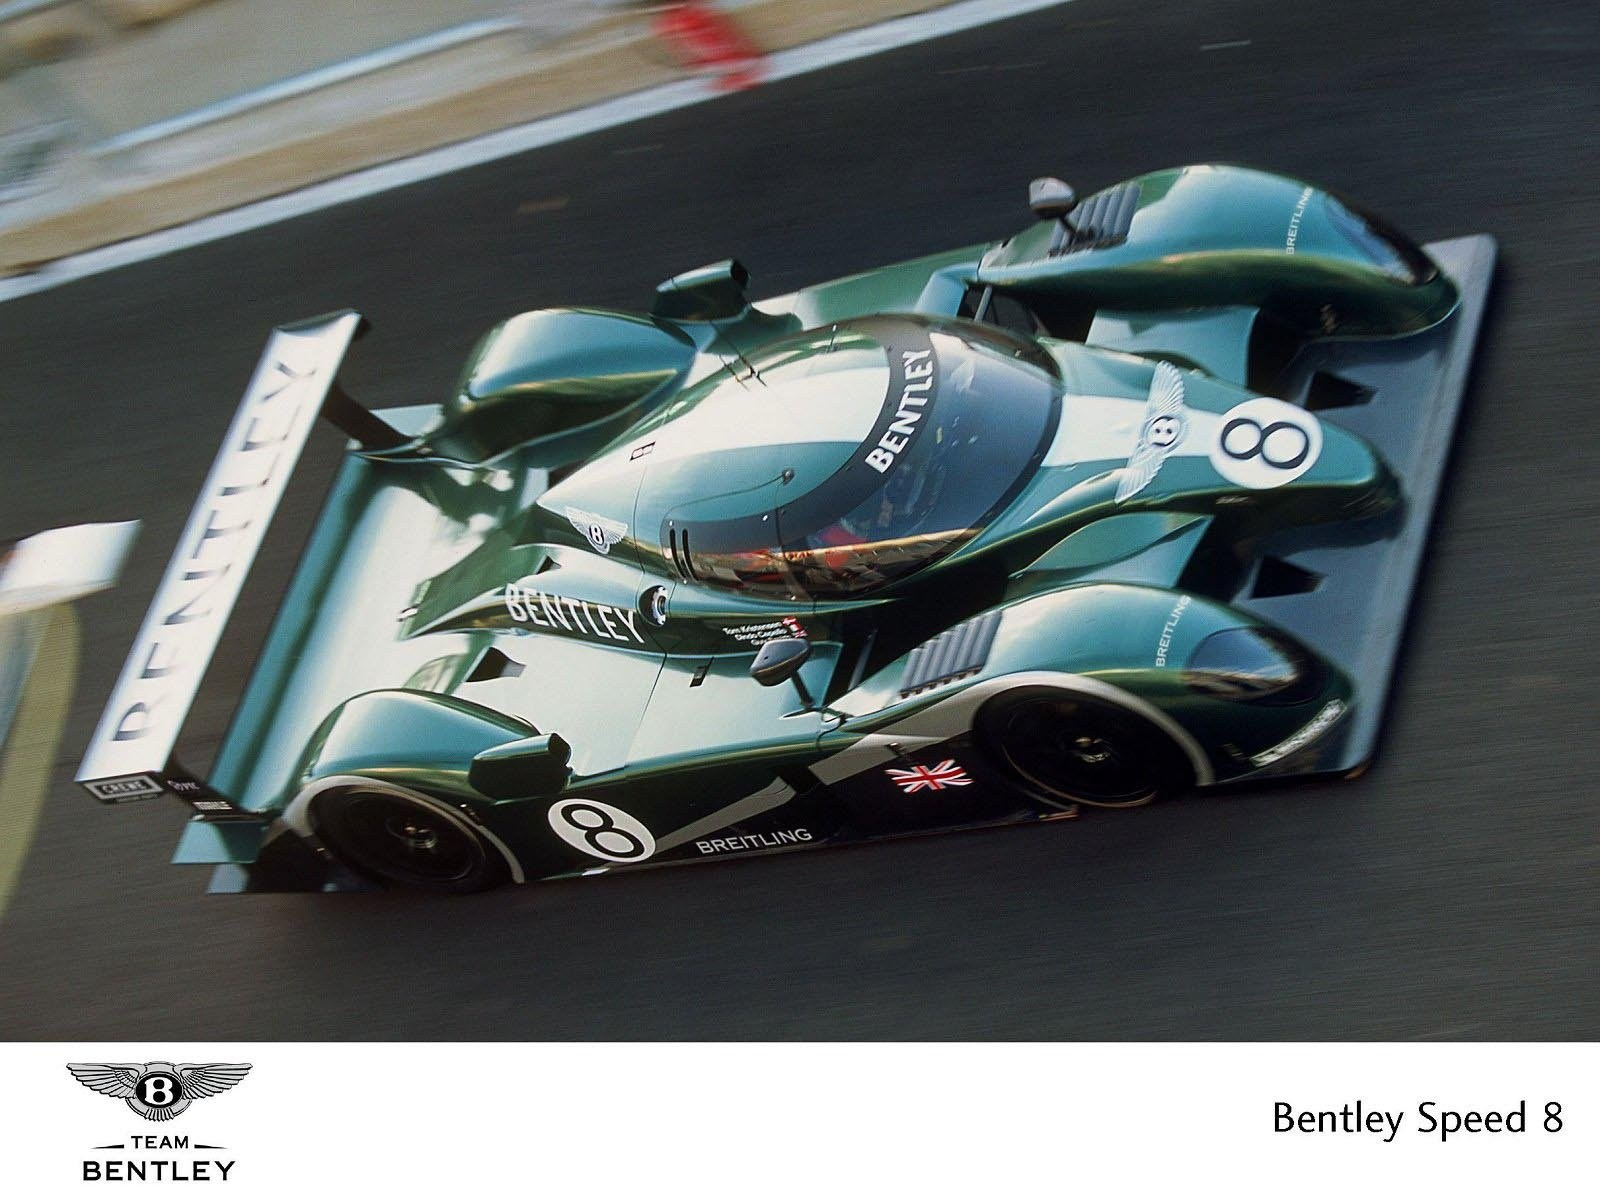 Toy Car Wallpaper Bentley Speed 8 Group Gtp 2003 Racing Cars